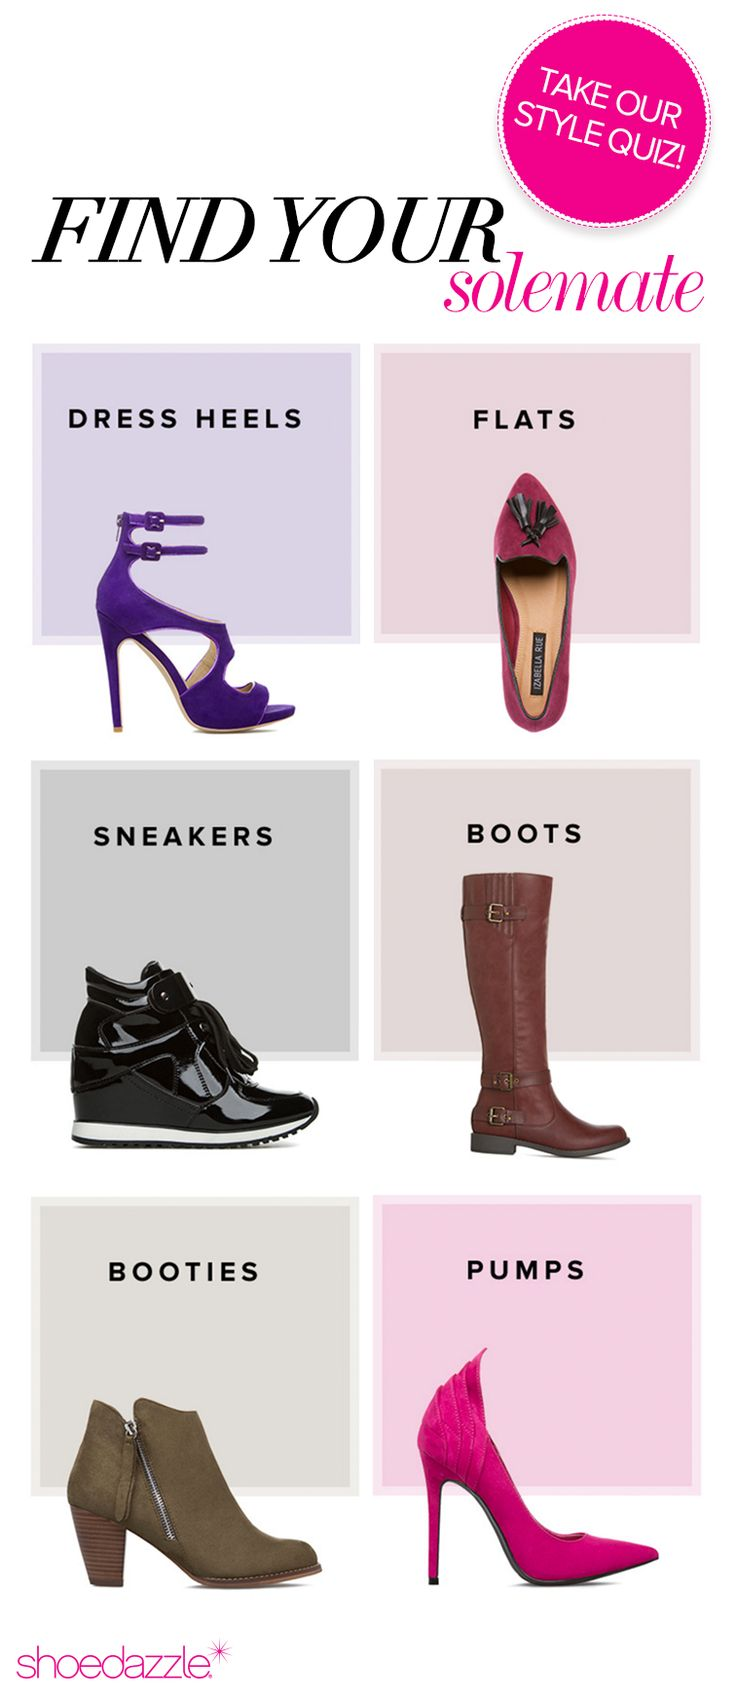 EXCLUSIVE NEW VIP OFFER - $10 shoe! Be a part of the in-crowd and find the hottest shoes and the latest trends when you join ShoeDazzle today. Limited Time Offer, Sale ends 3/31/2016. From party-perfect pumps to wear-anywhere boots, ShoeDazzle has the styles you want at a price you'll love. Whether you love star-studded heels or paired down flats, discover unique, new styles at a fraction of the price. Take the Style Profile Quiz to enjoy this exclusive offer.